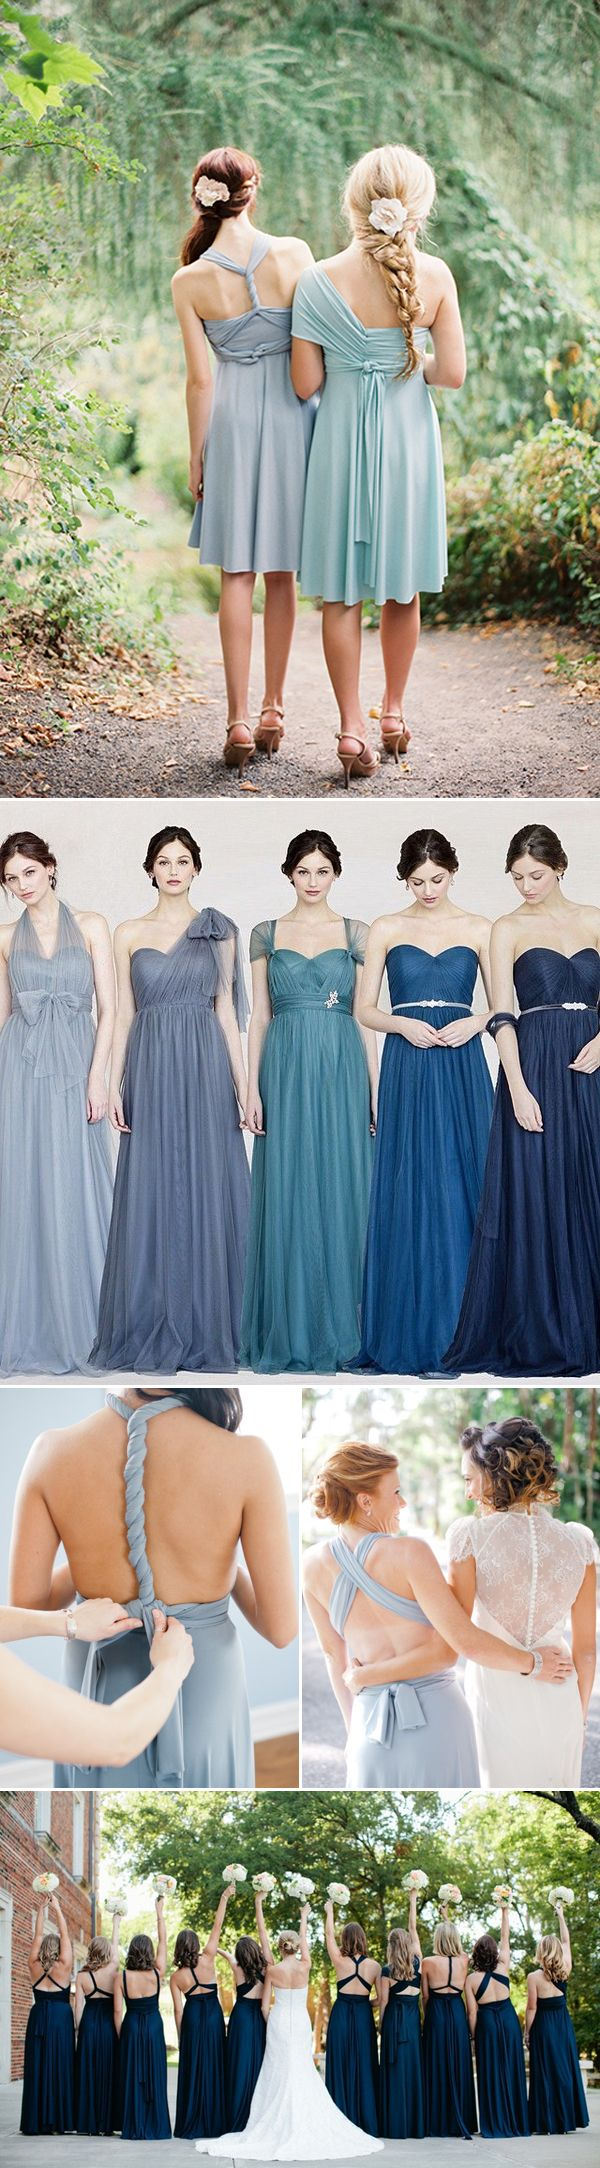 20 Chic and Stylish Convertible (Twist-Wrap) Bridesmaid Dresses - Blue dresses